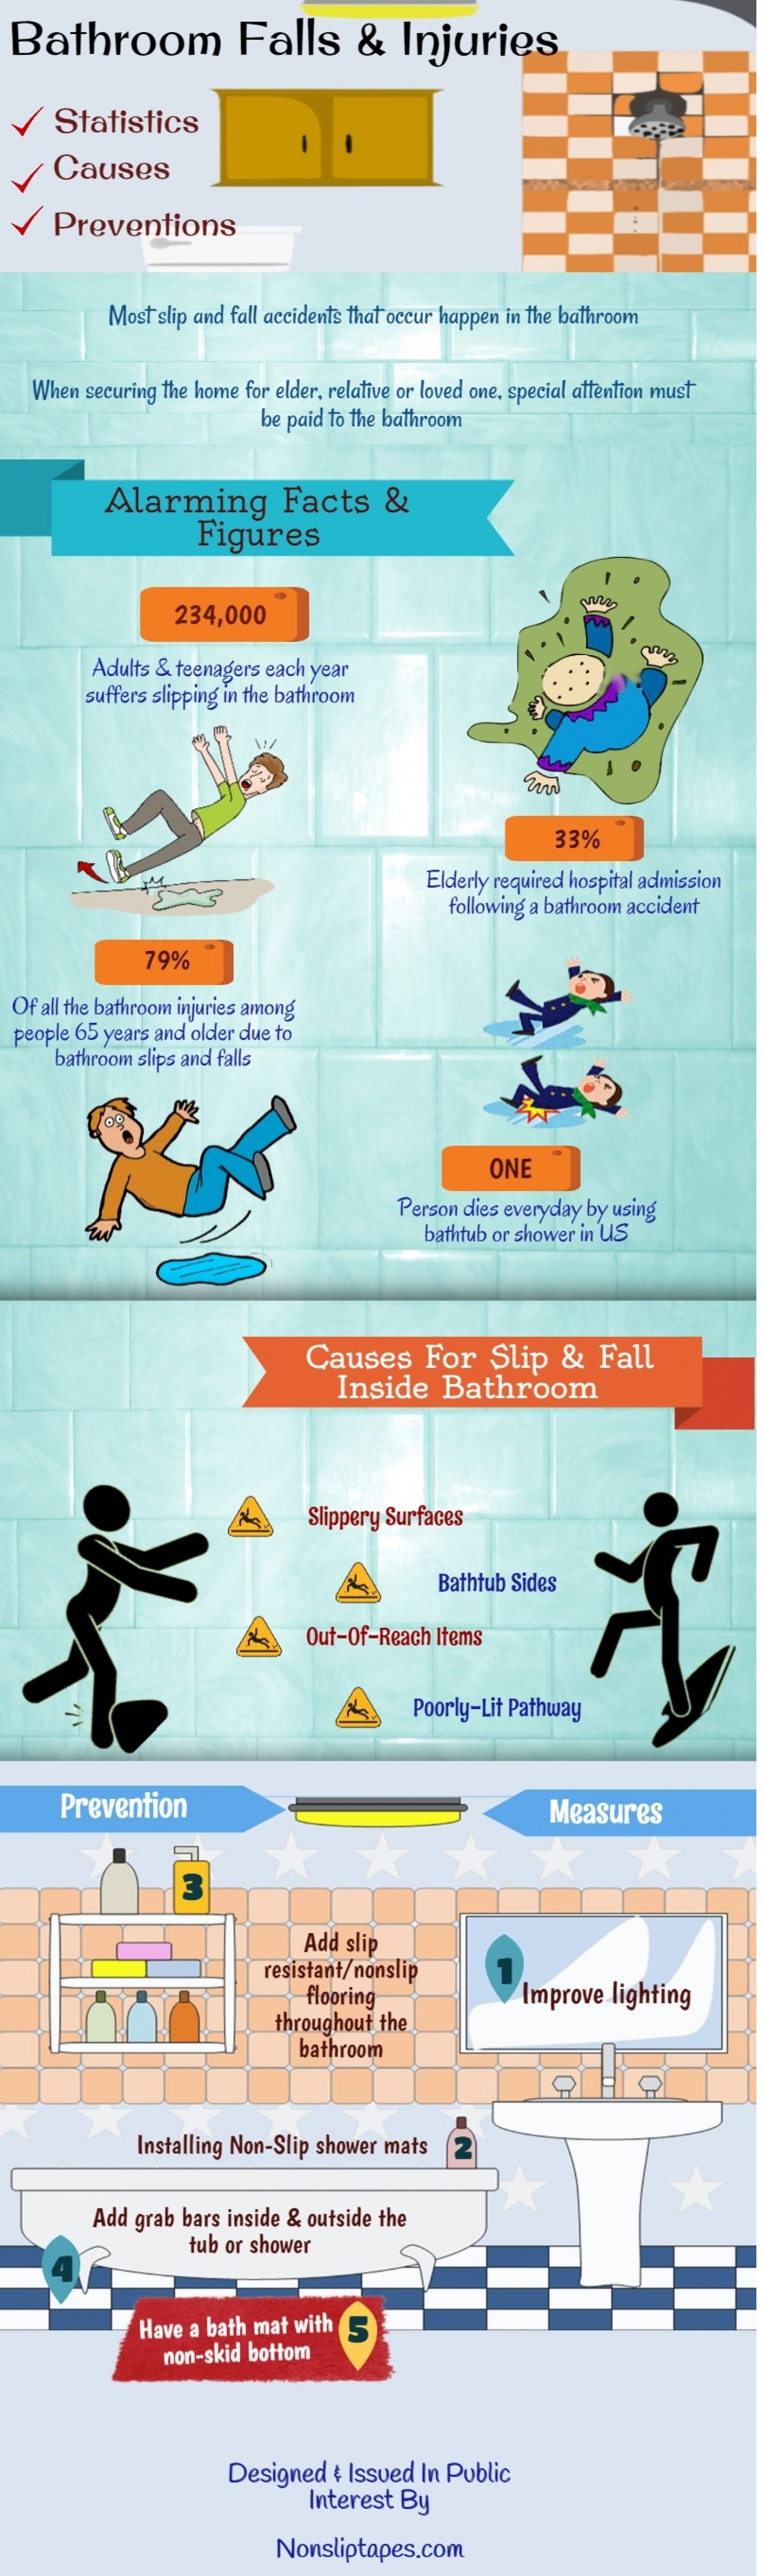 Bathroom Falls & Injuries Statistics, Causes & Prevention Infographic